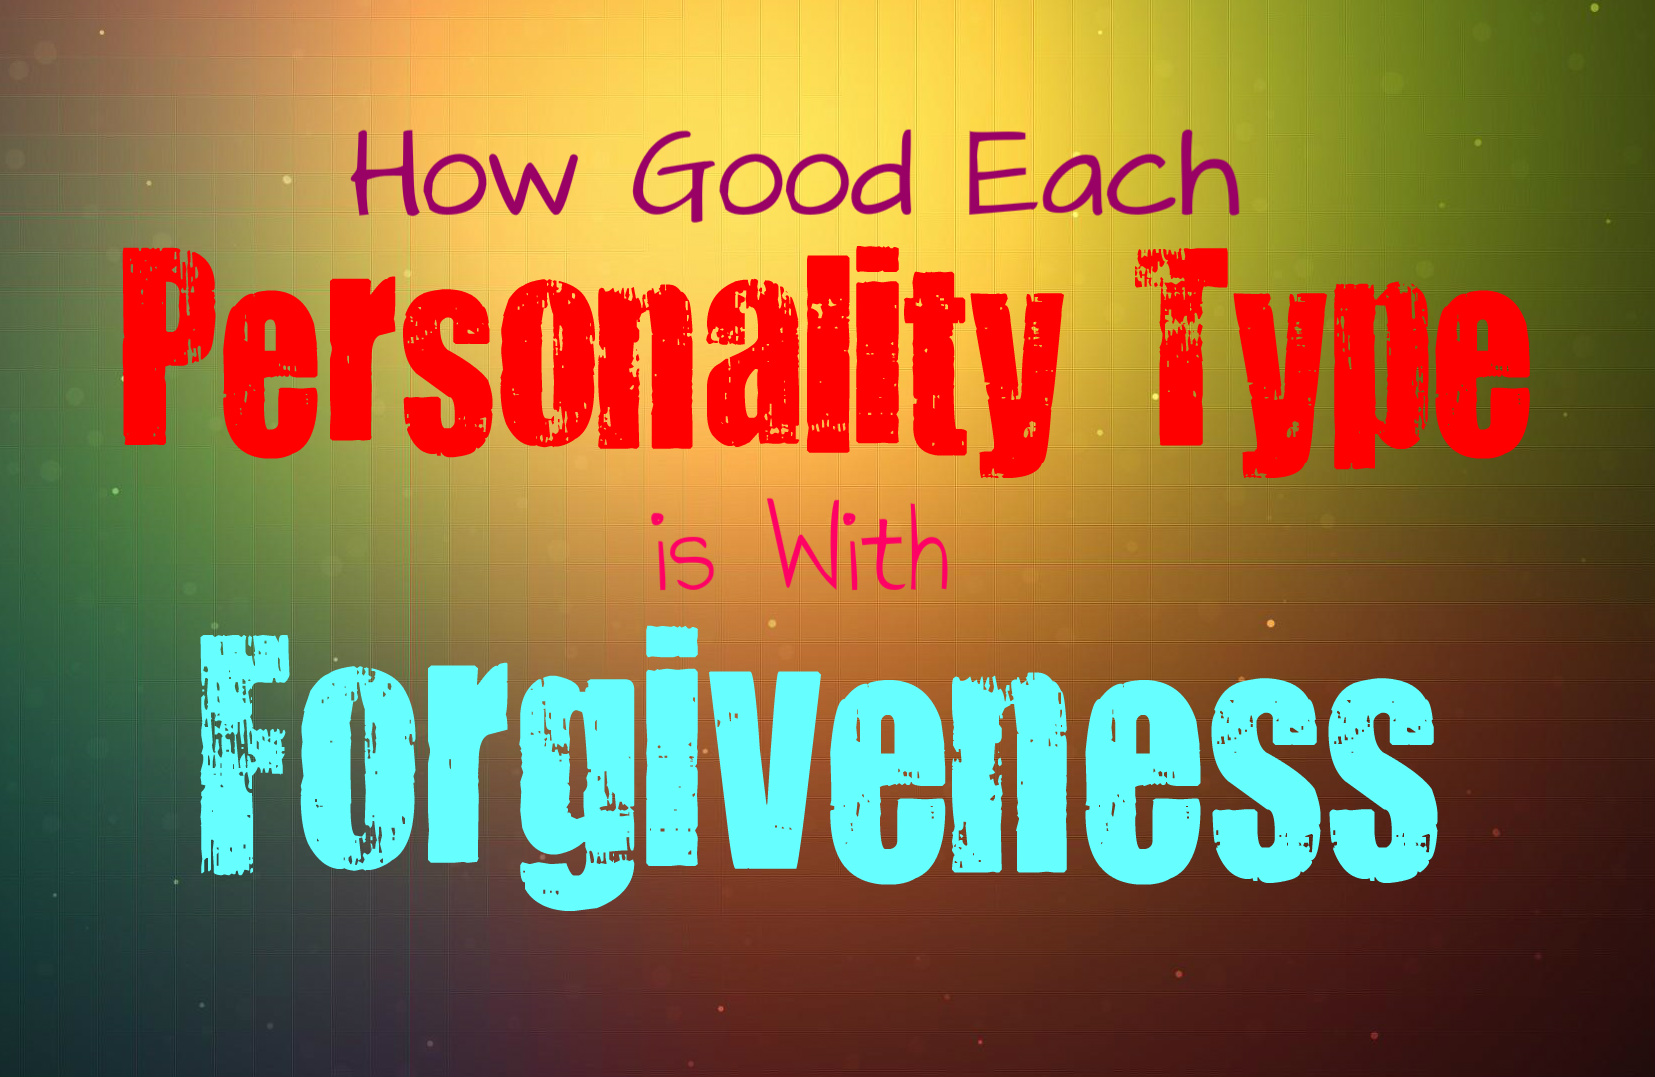 How Good Each Personality Type is With Forgiveness